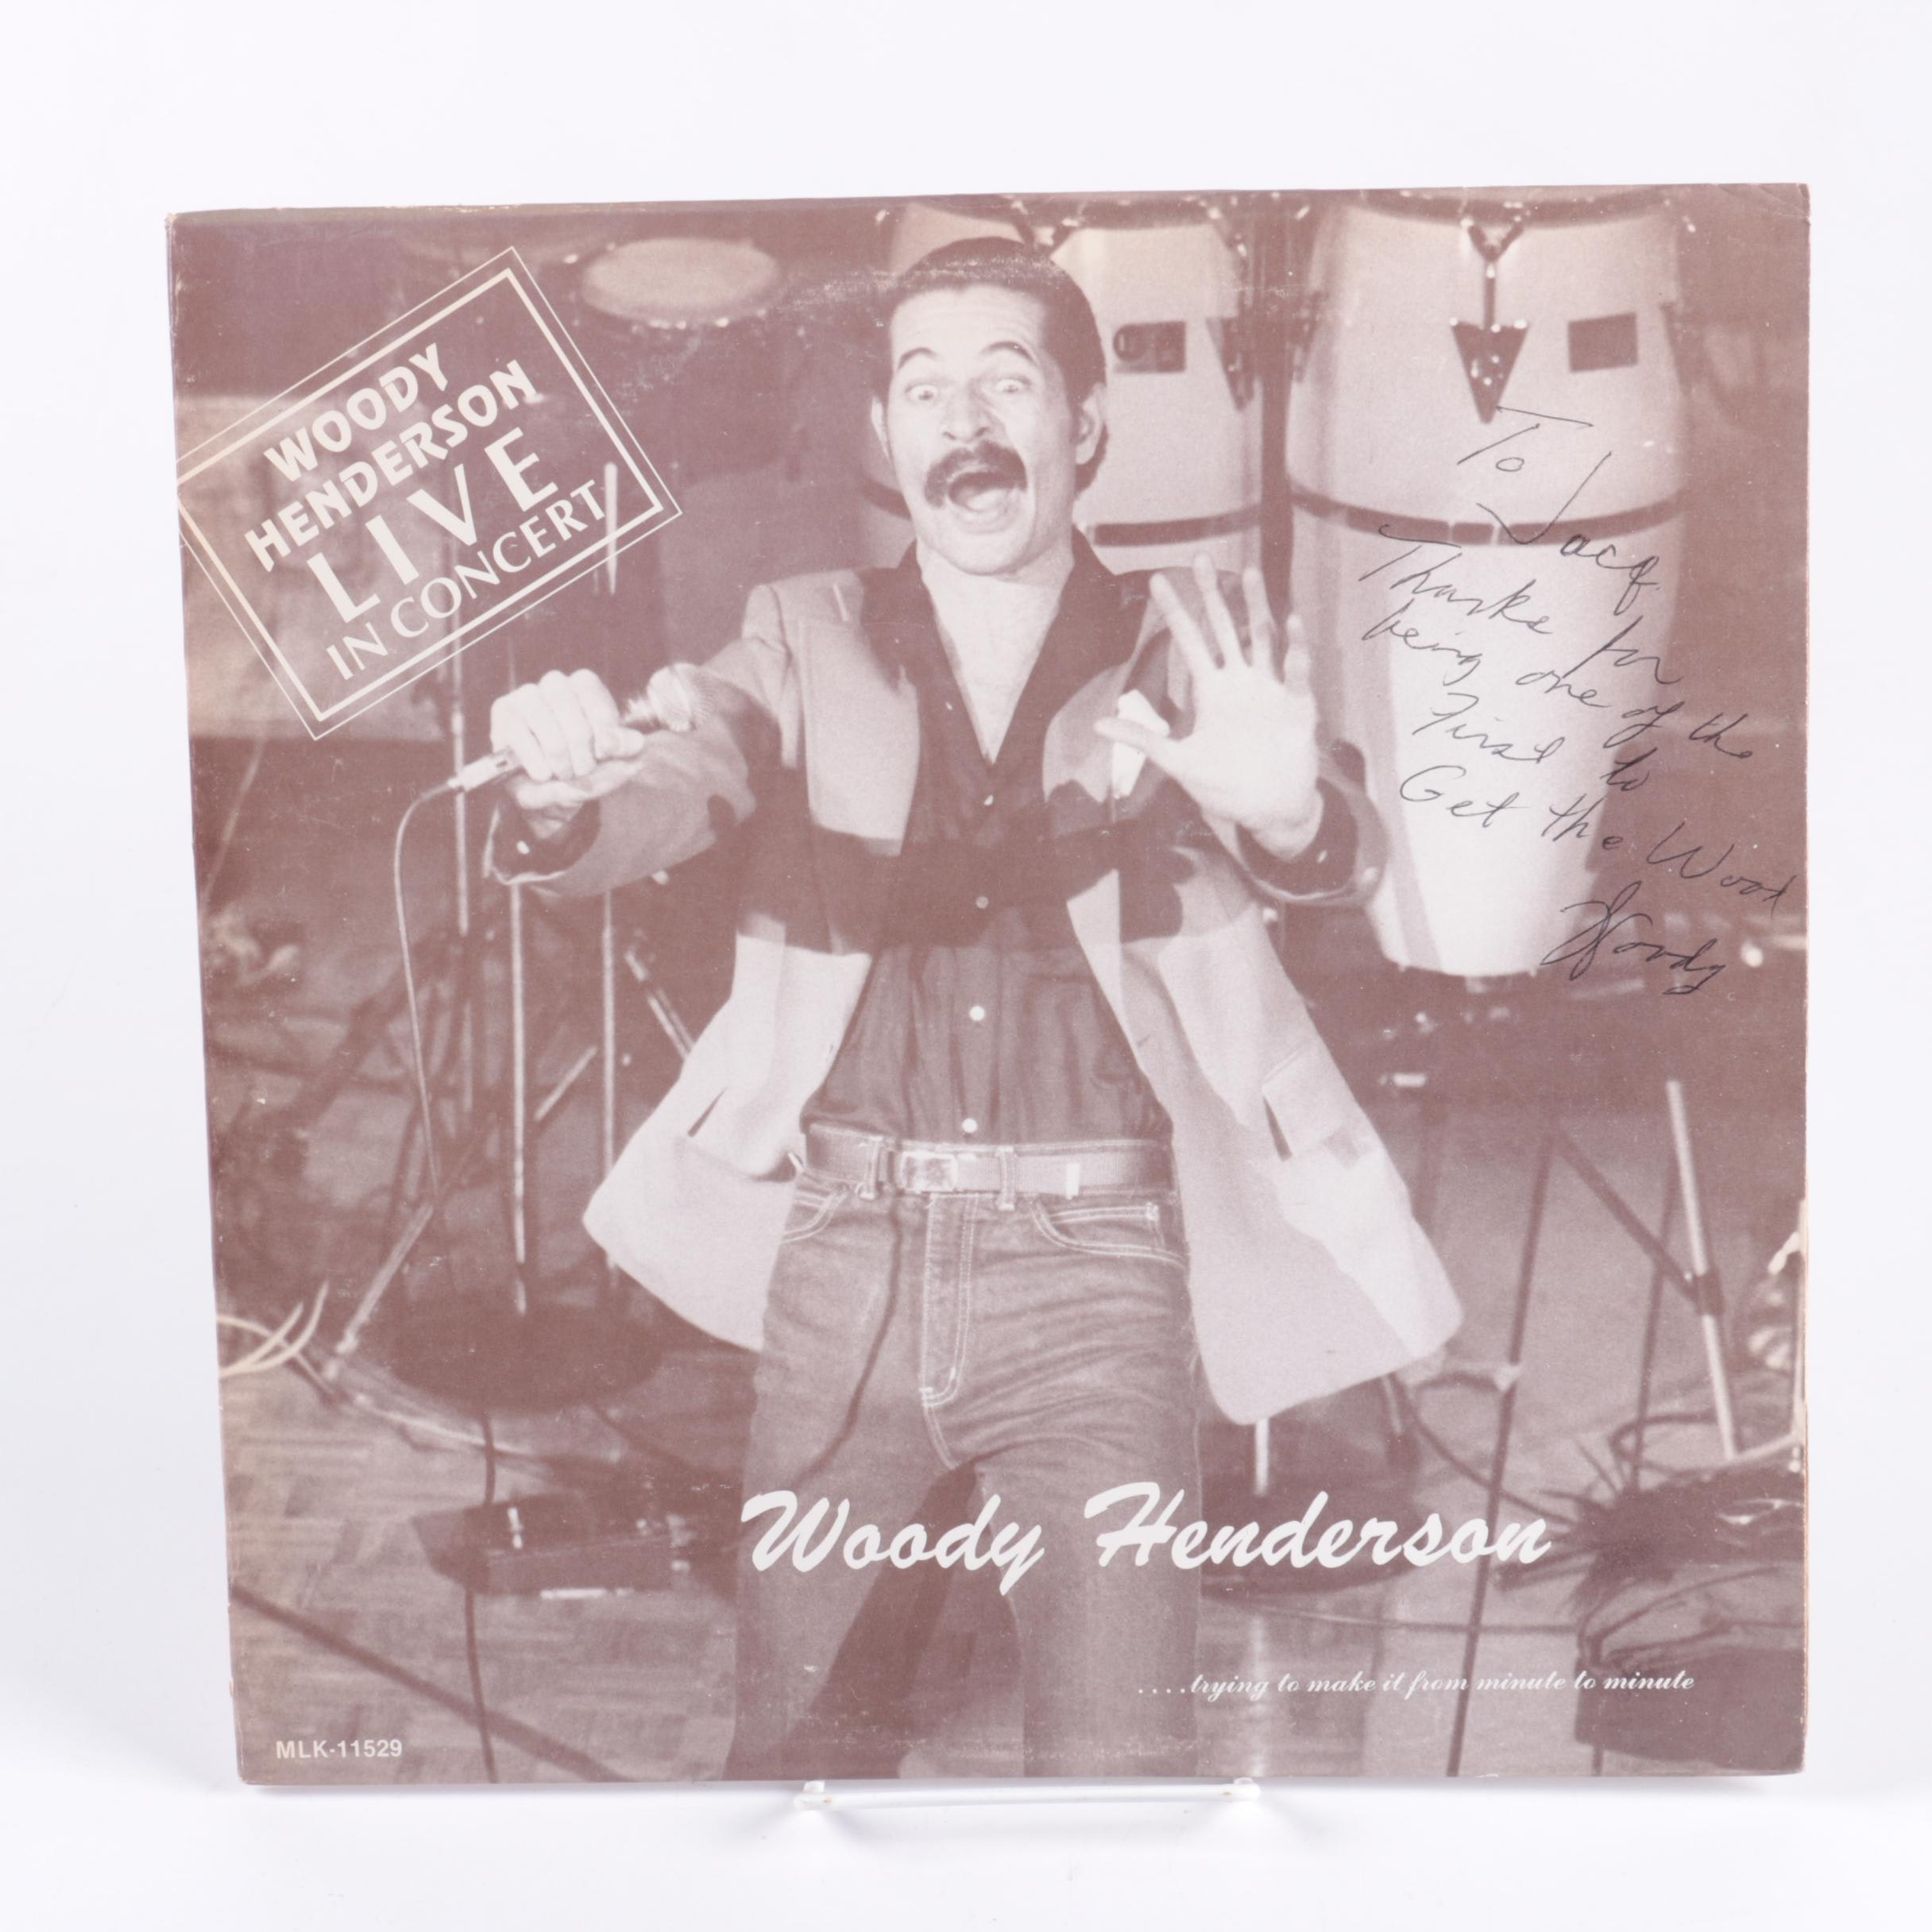 Woody Henderson Signed Record